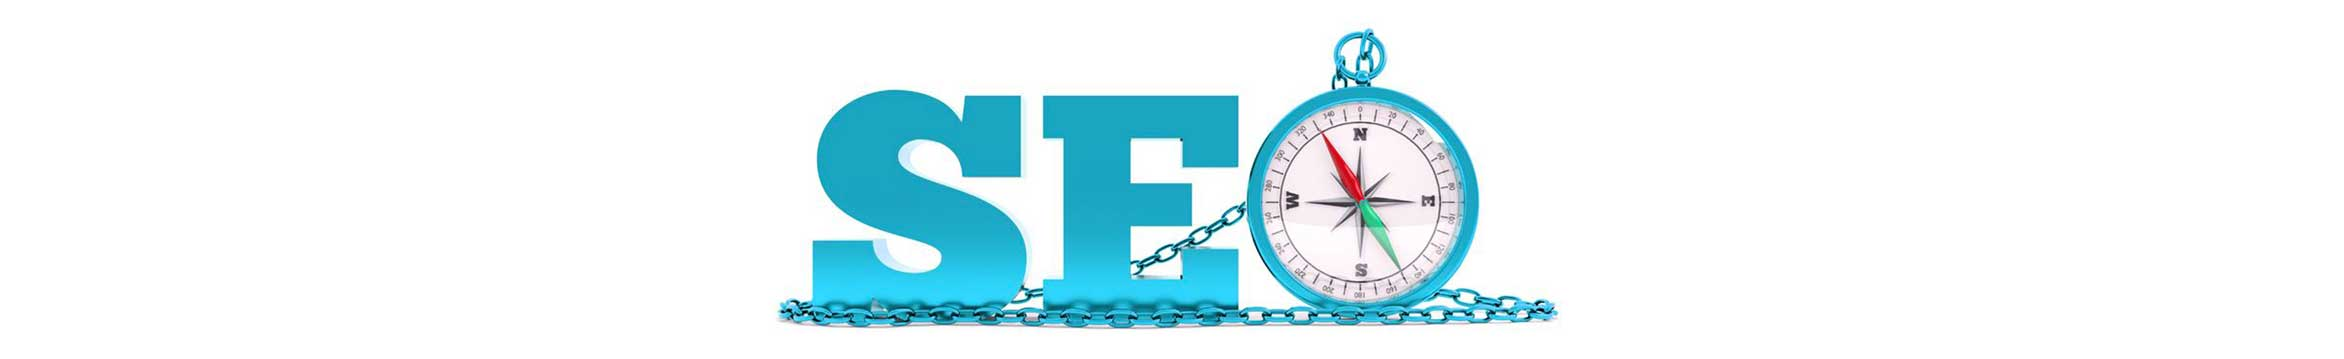 Search Engine Optimization (SEO) Solutions